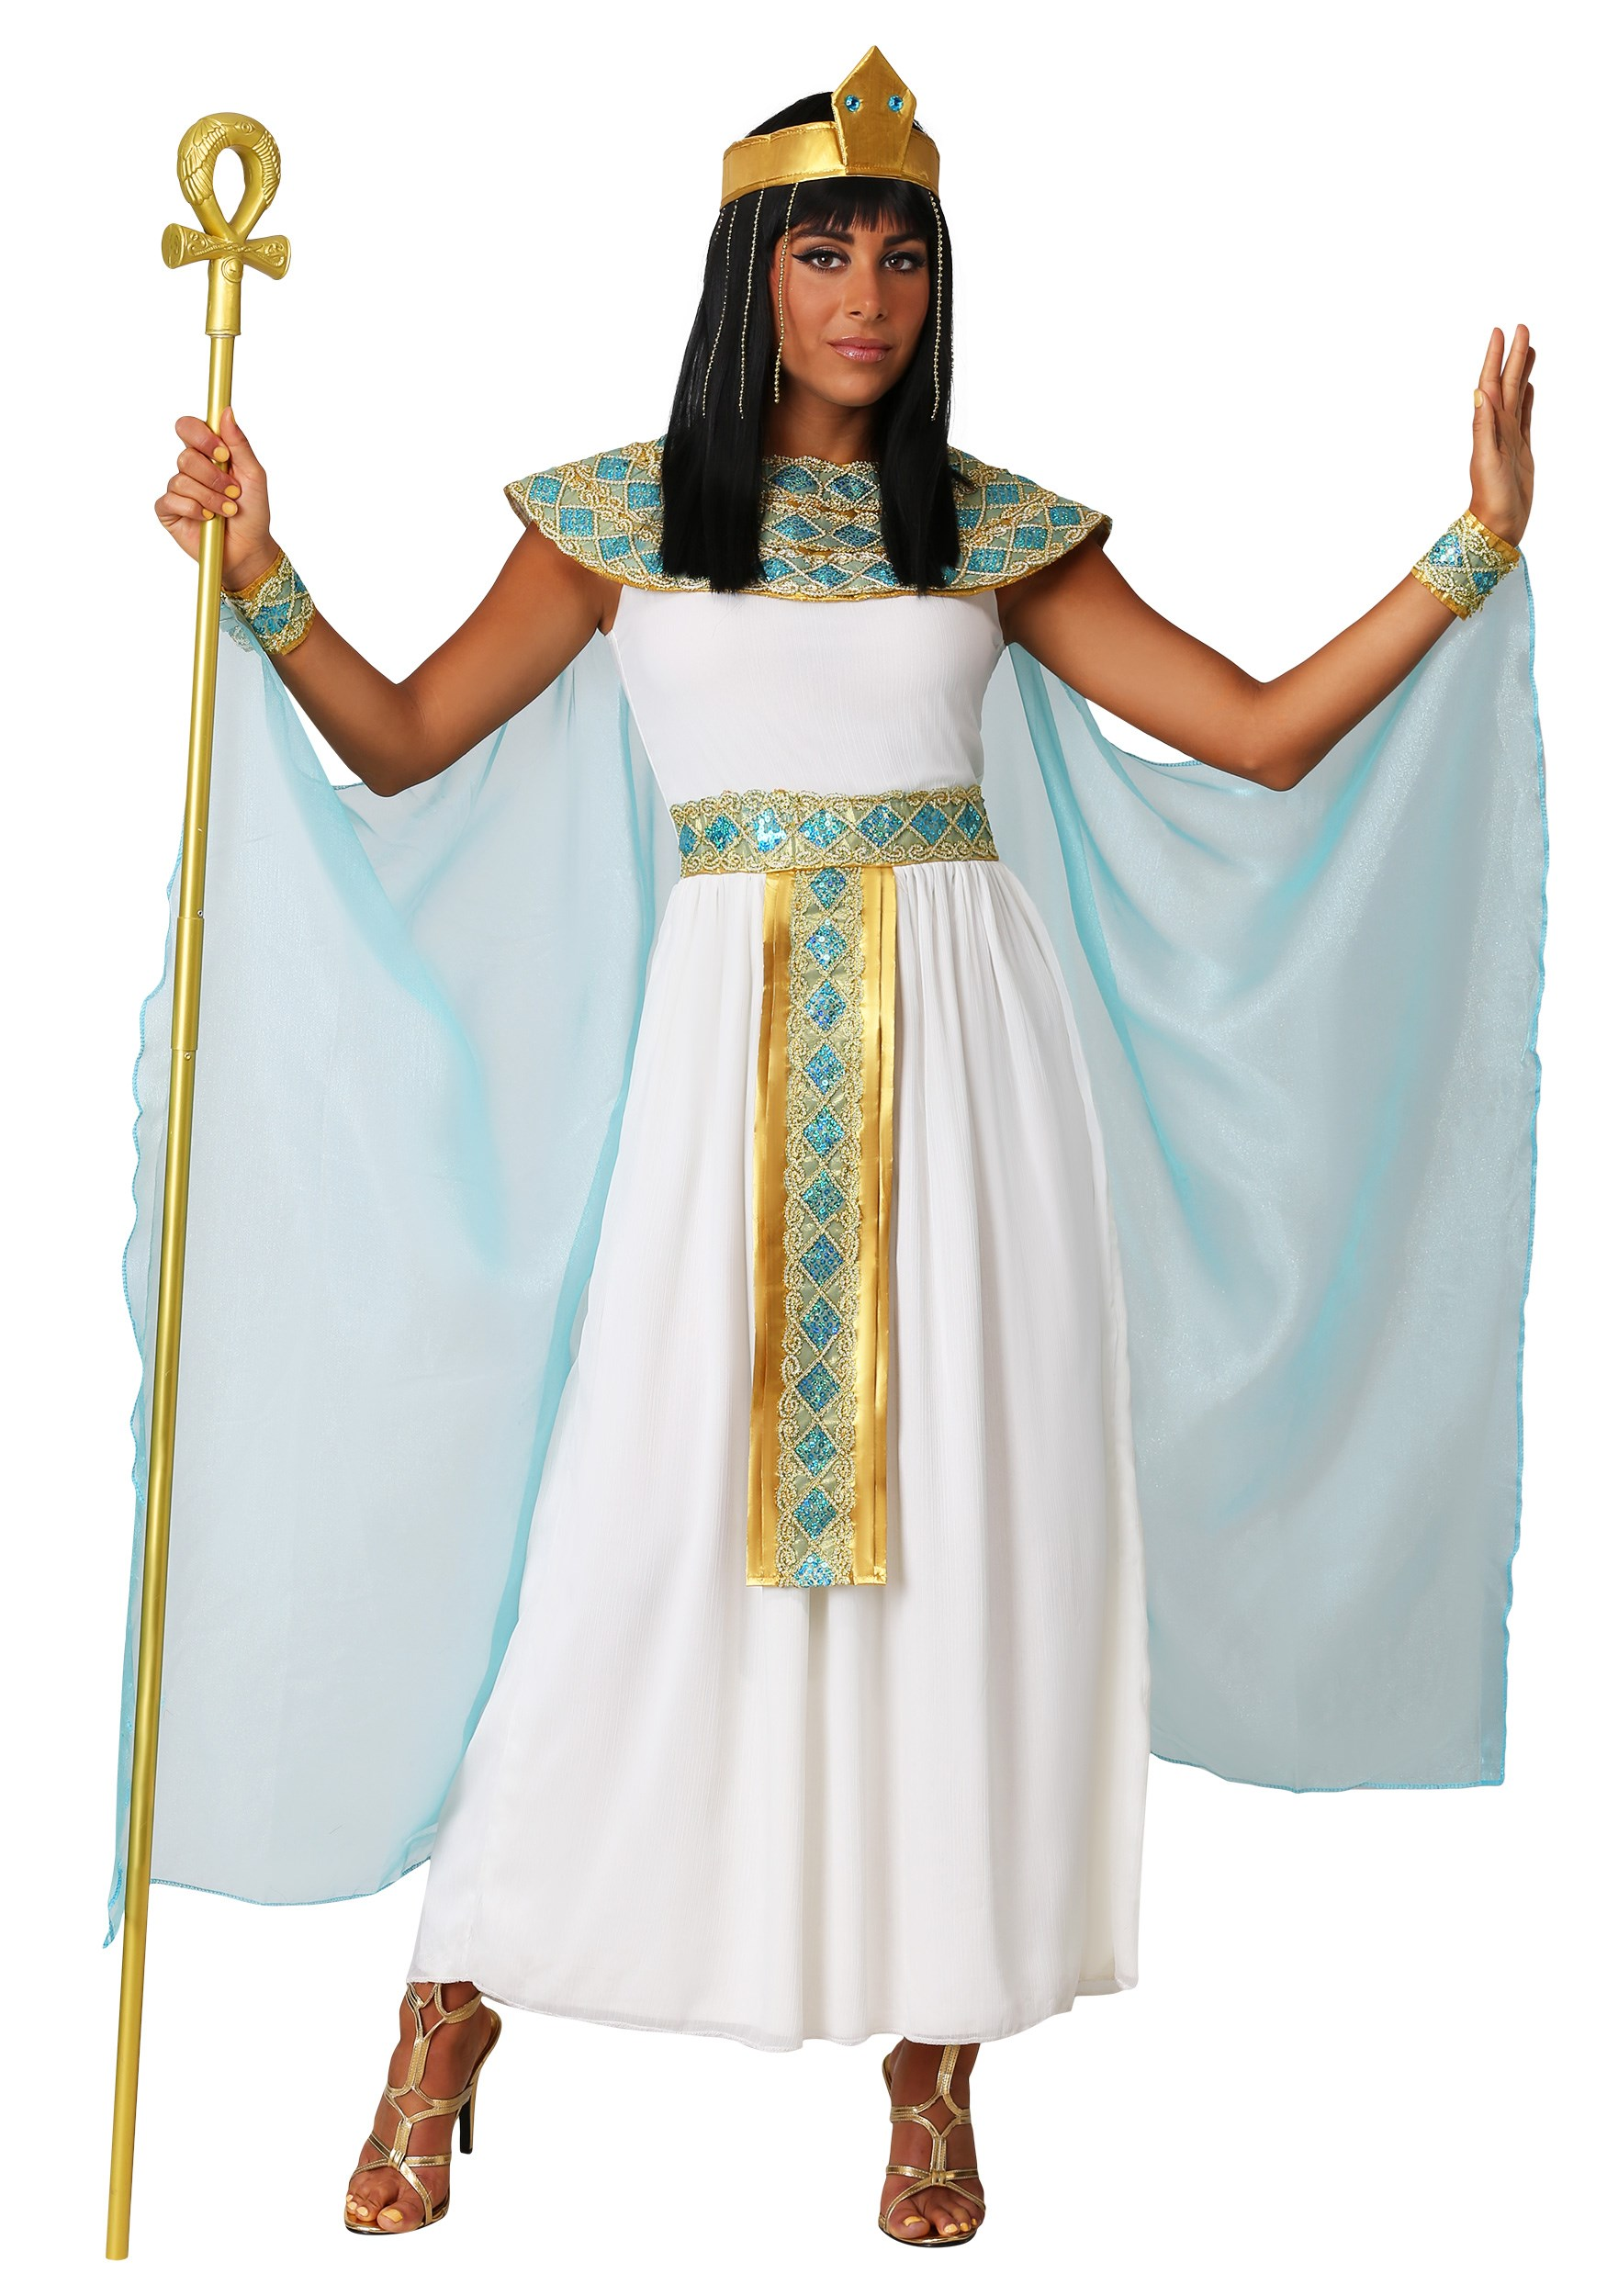 Adult Cleopatra Costume. Adult Halloween Costumes   HalloweenCostumes com